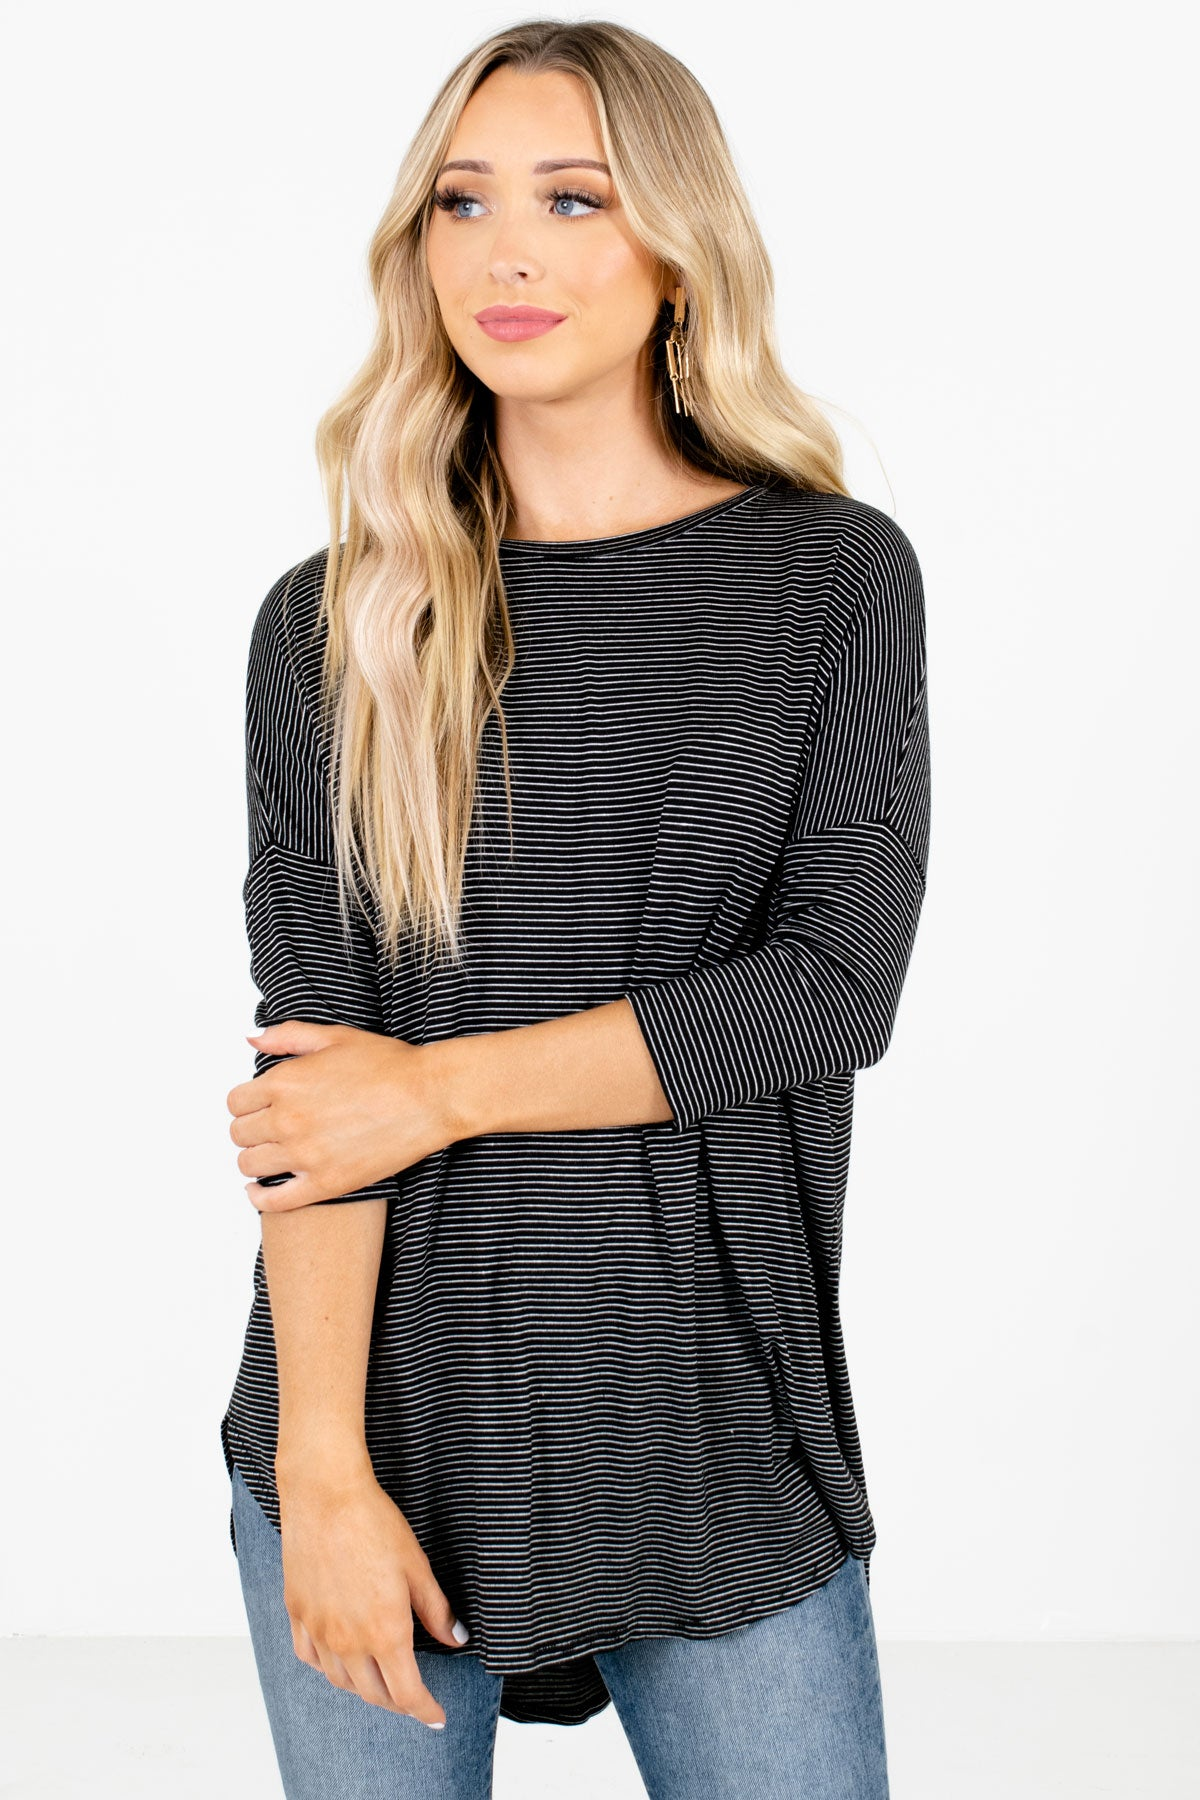 Black and White Striped Boutique Tops for Women